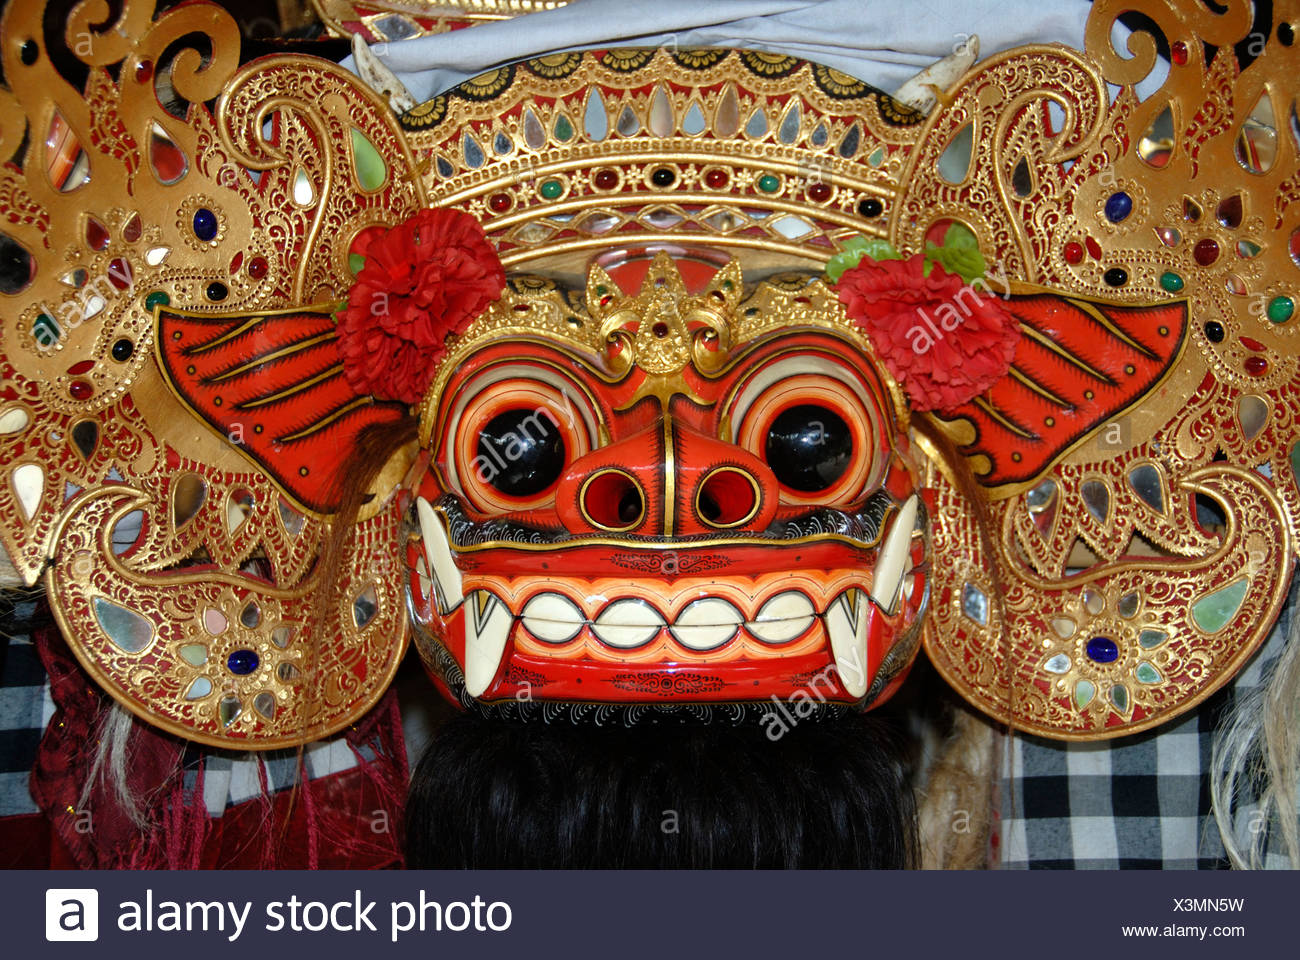 Arts and culture, Barong mask, mystical mythical creature, Ubud, Bali, Indonesia, Southeast Asia, Asia Stock Photo